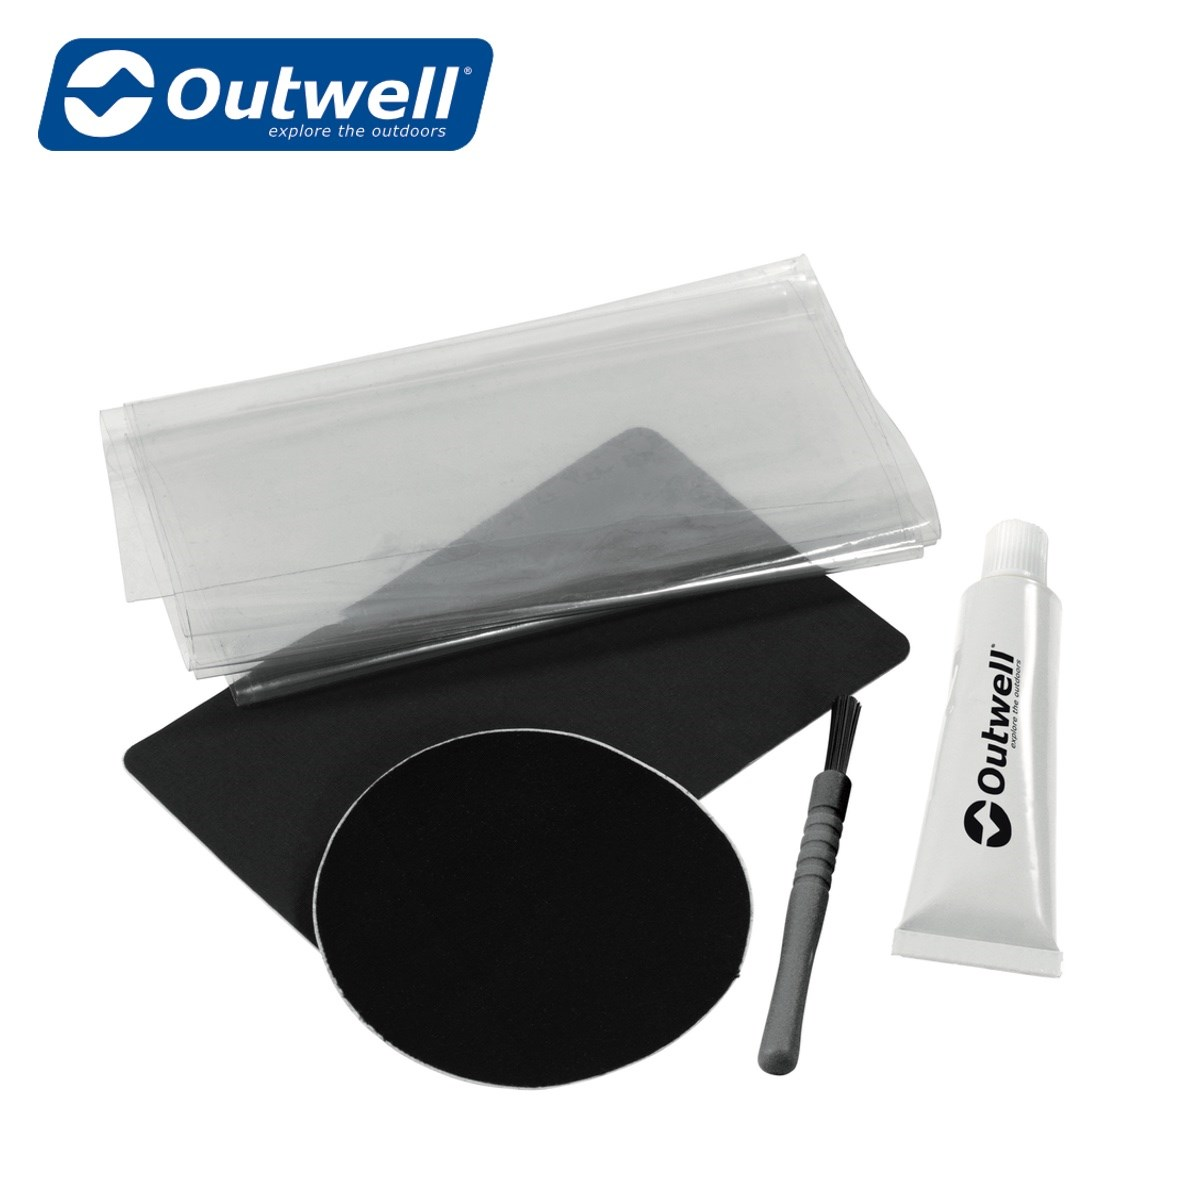 Outwell Telescope Peg Remover